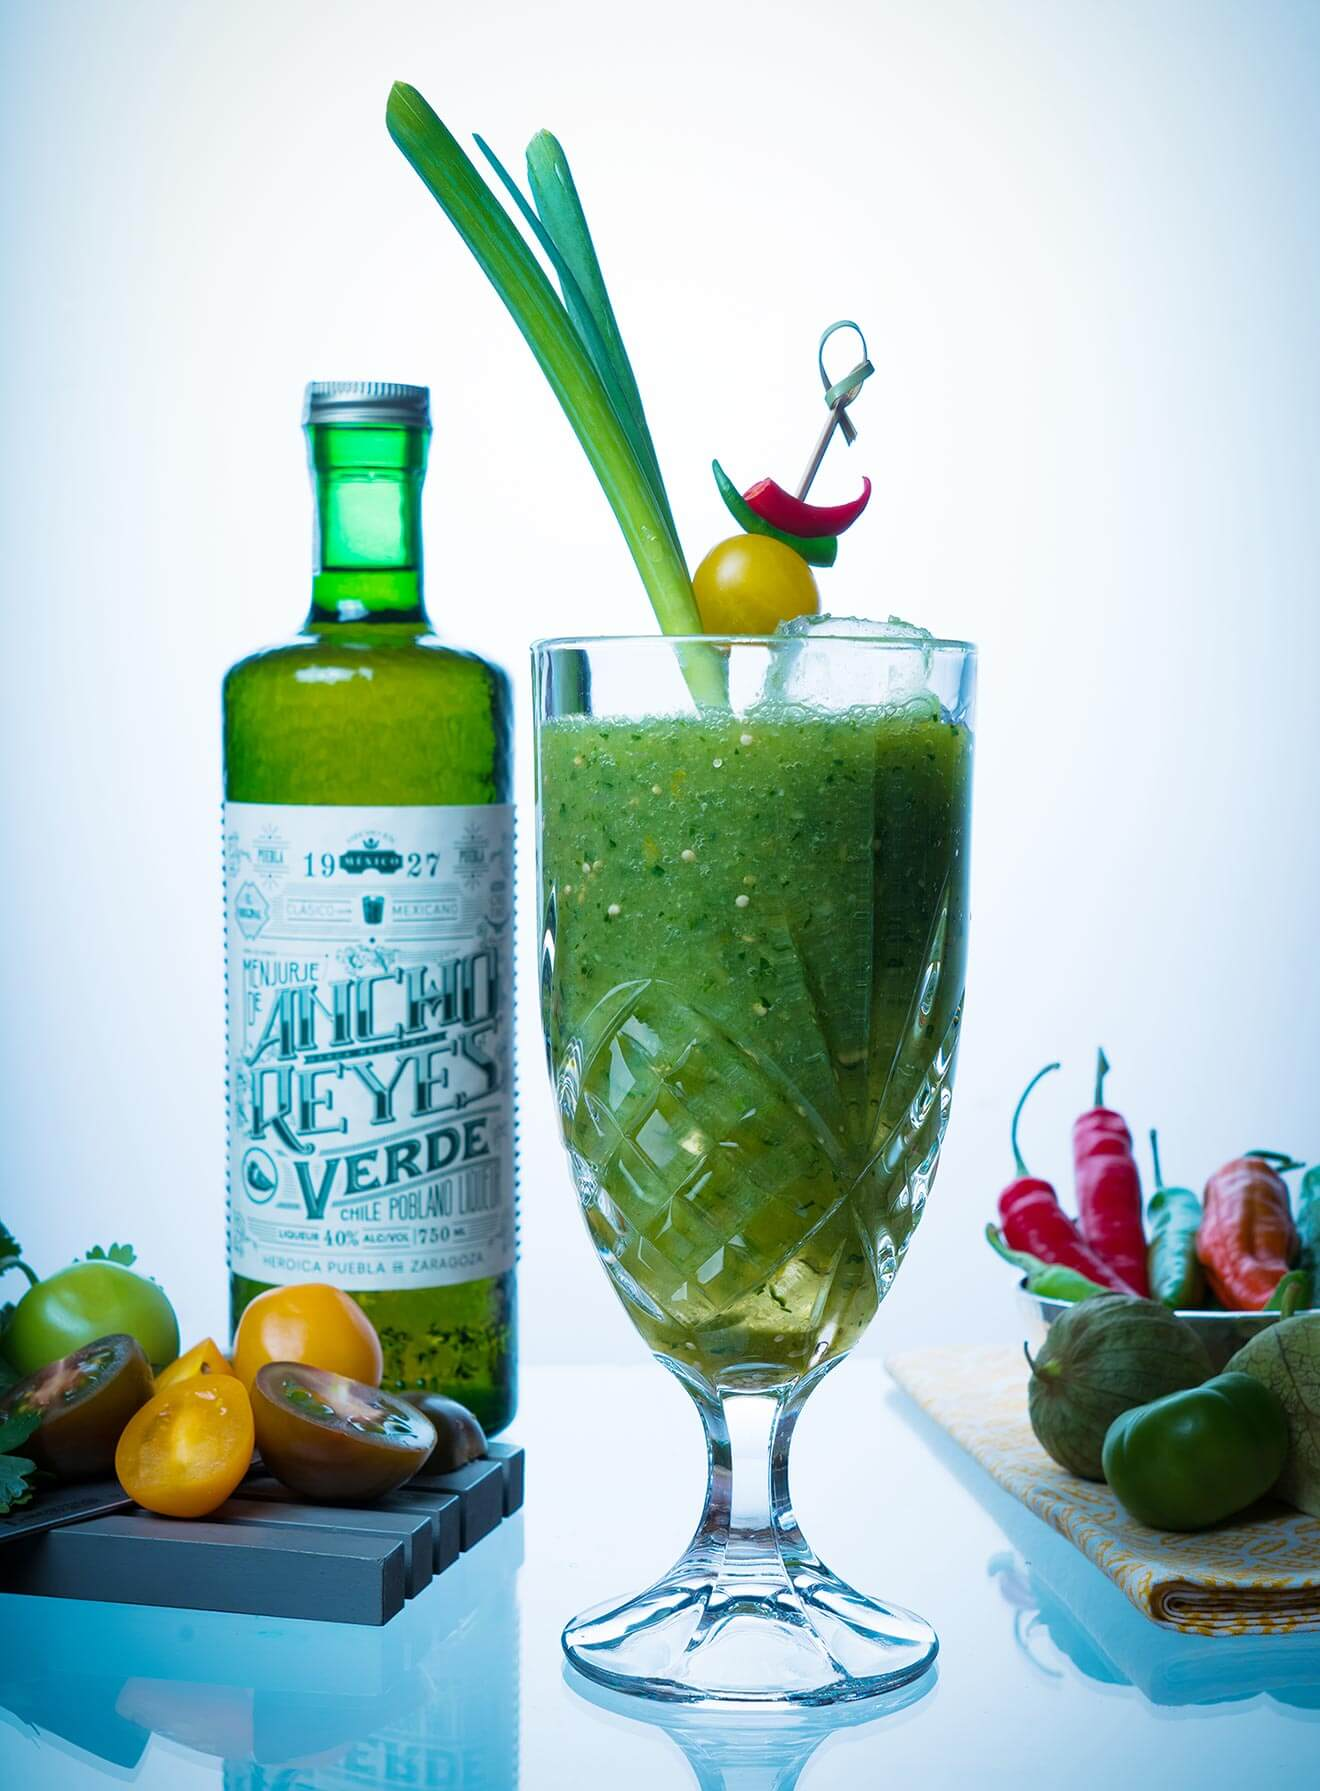 Maria Verde, cocktail and bottle with garnish